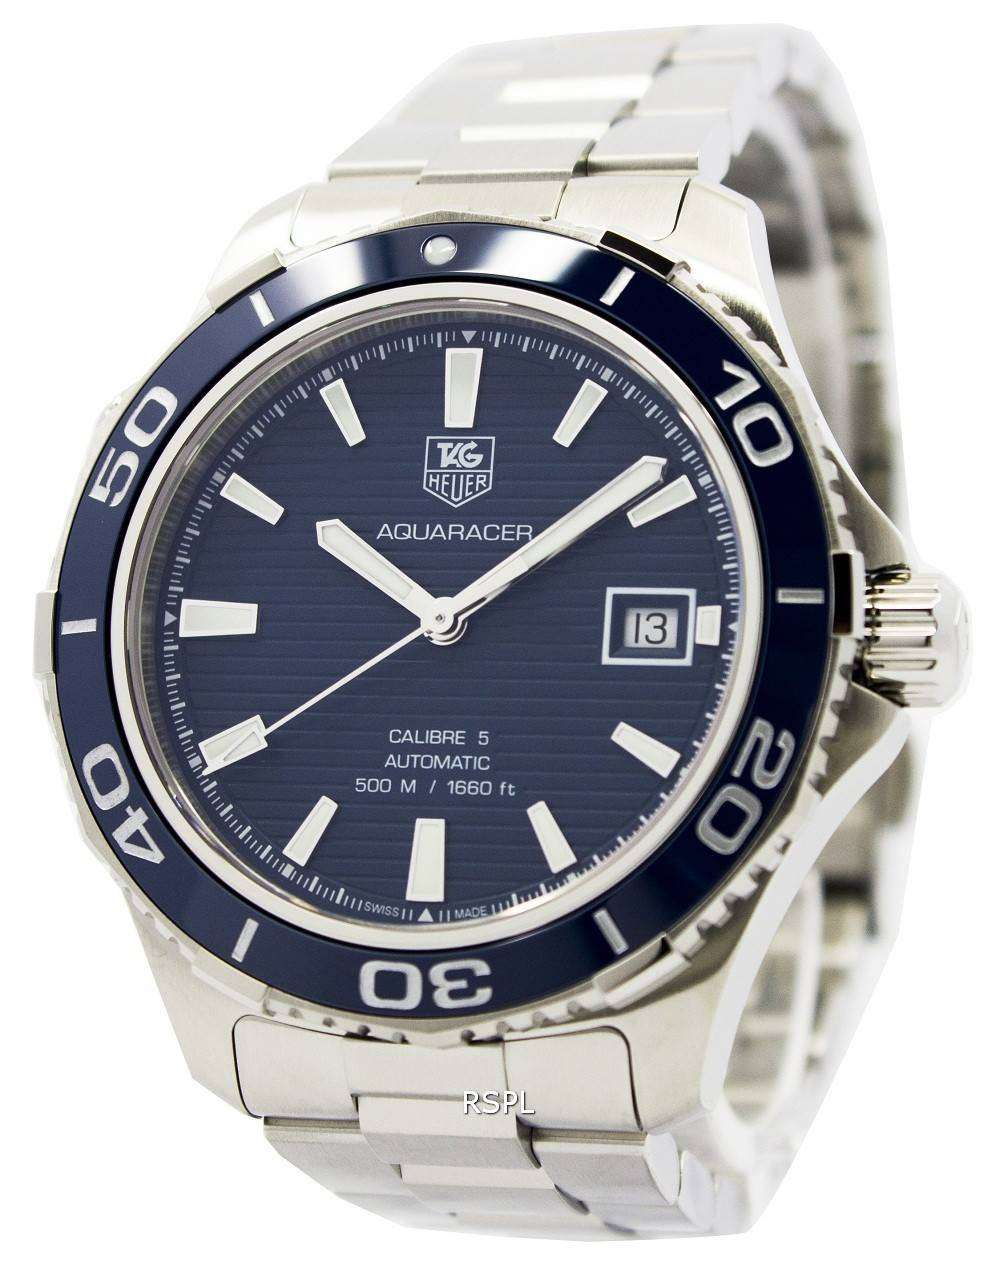 Tag heuer automatic aquaracer calibre 5 500m wak2111 ba0830 mens watch downunderwatches for Tag heuer automatic